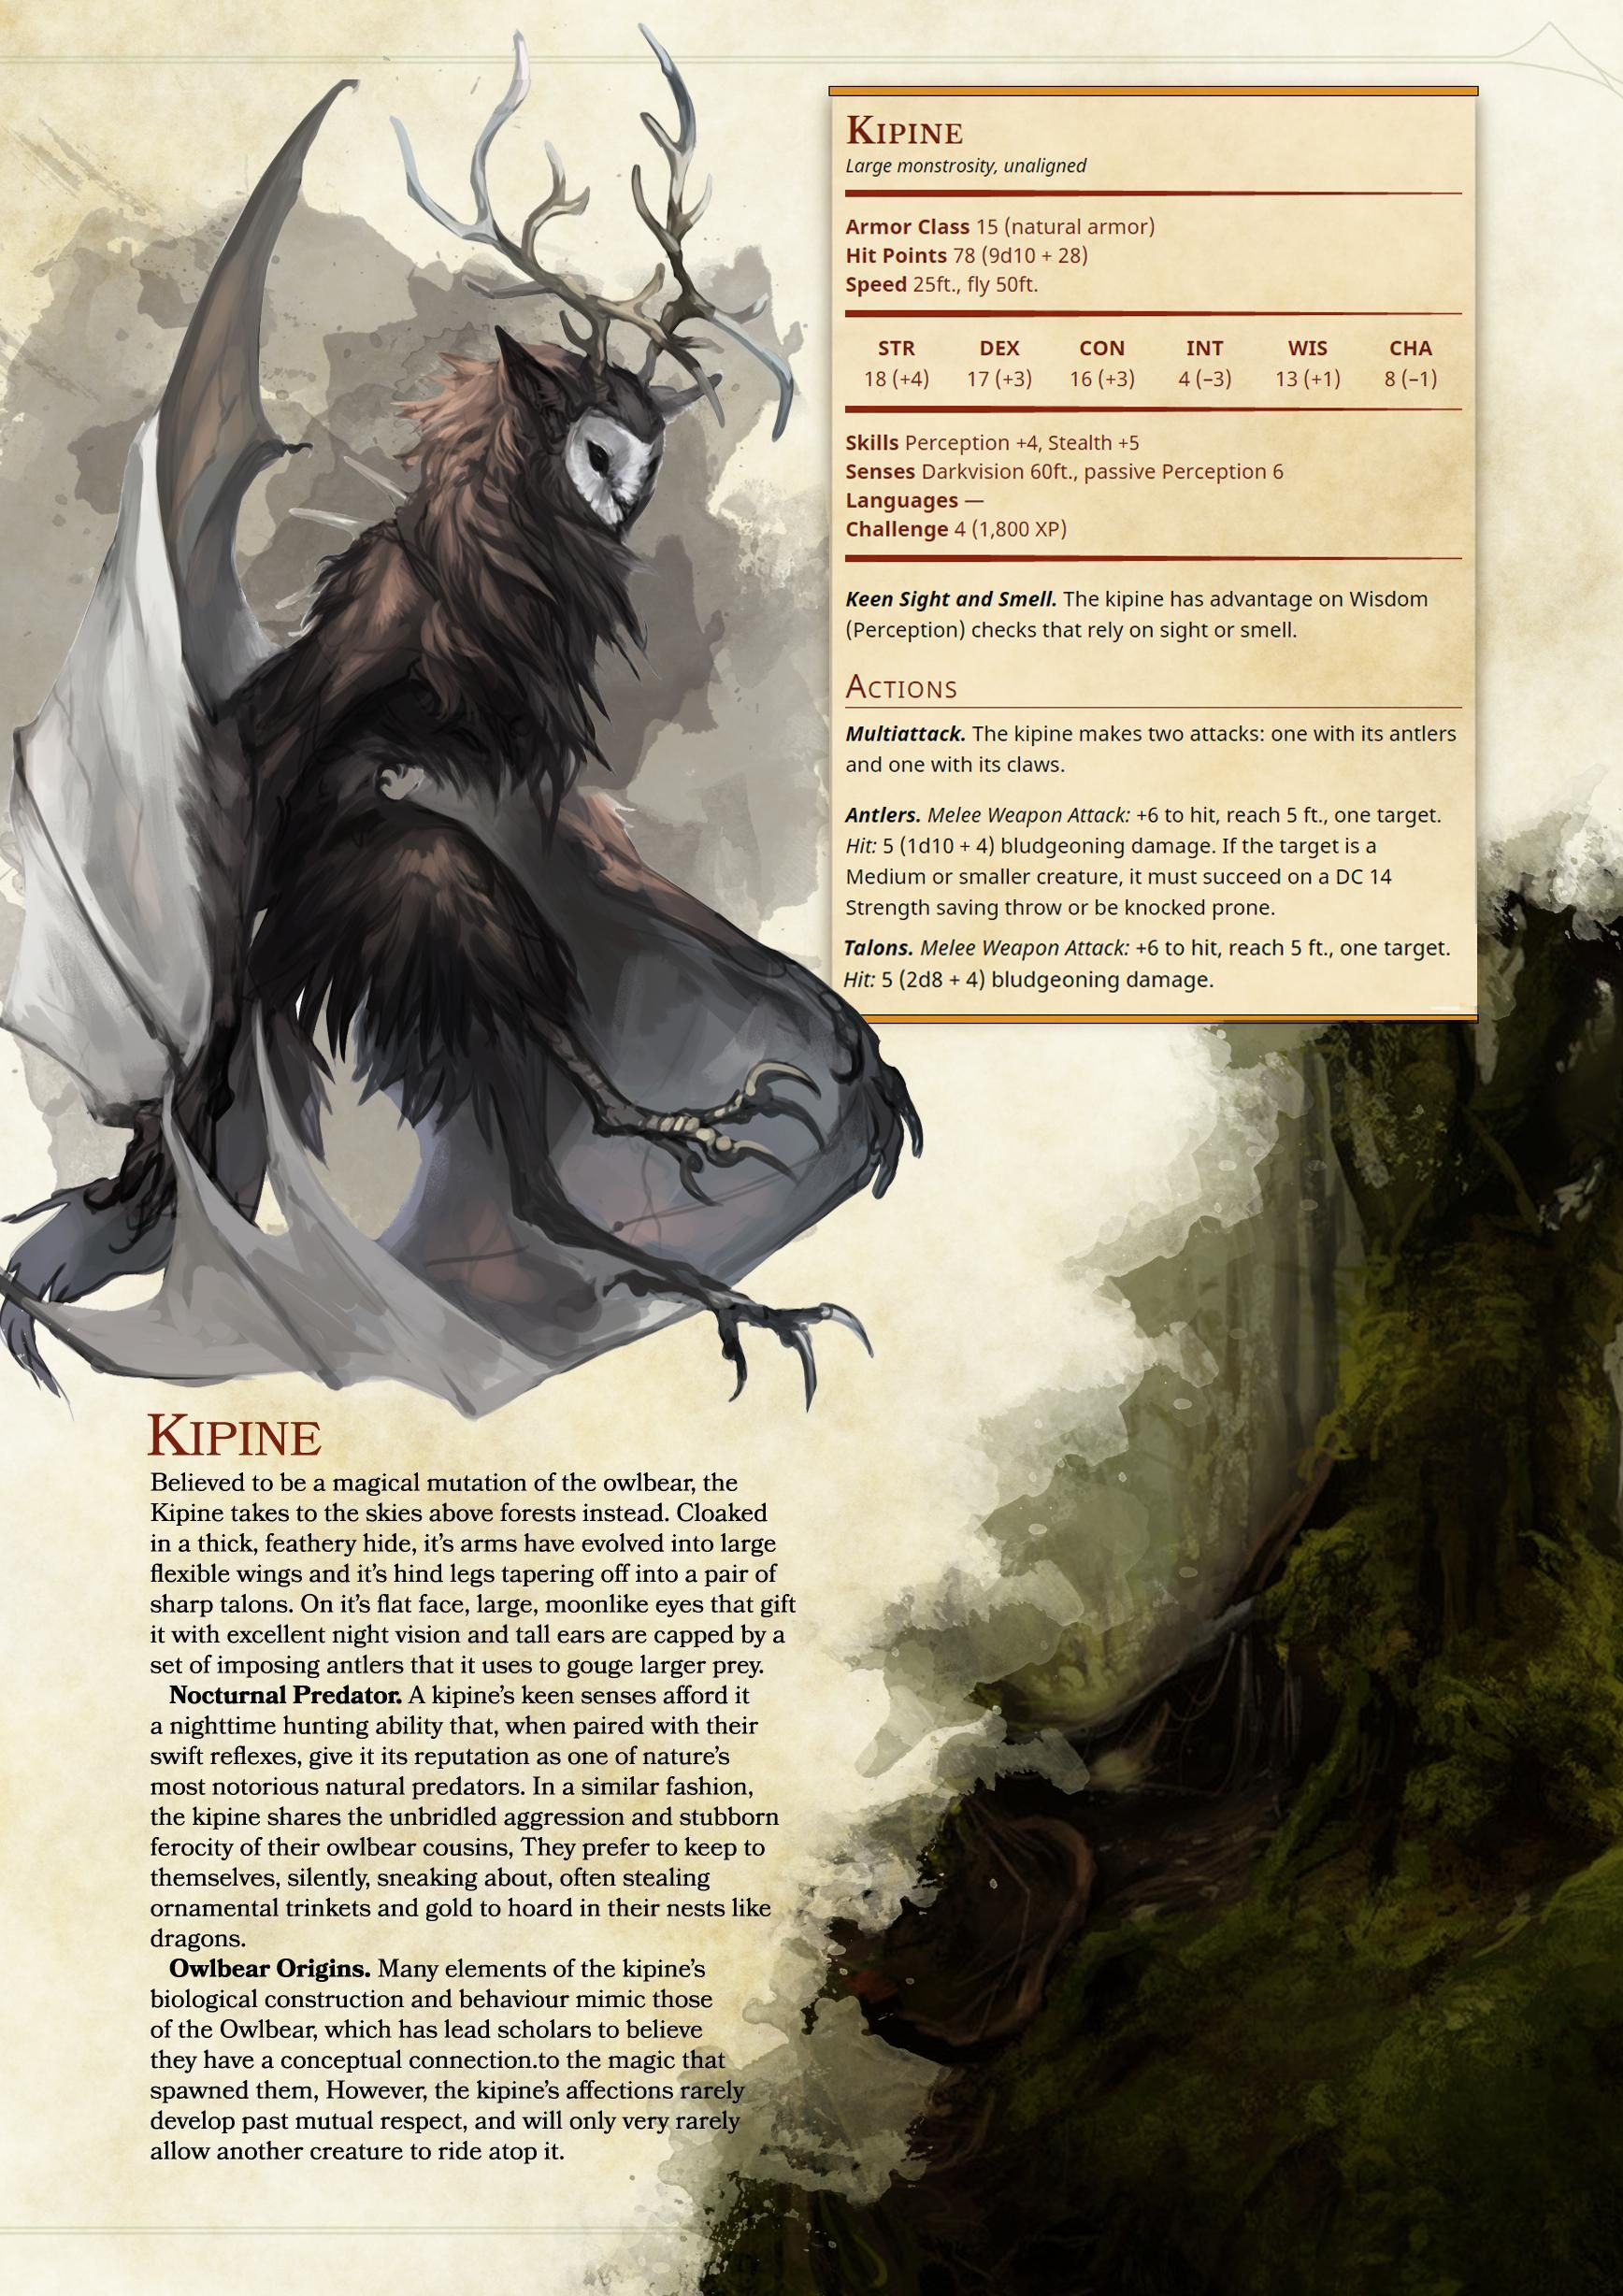 D&D 5e Monster: Kipine in 2019 | Concept Art | Dnd 5e